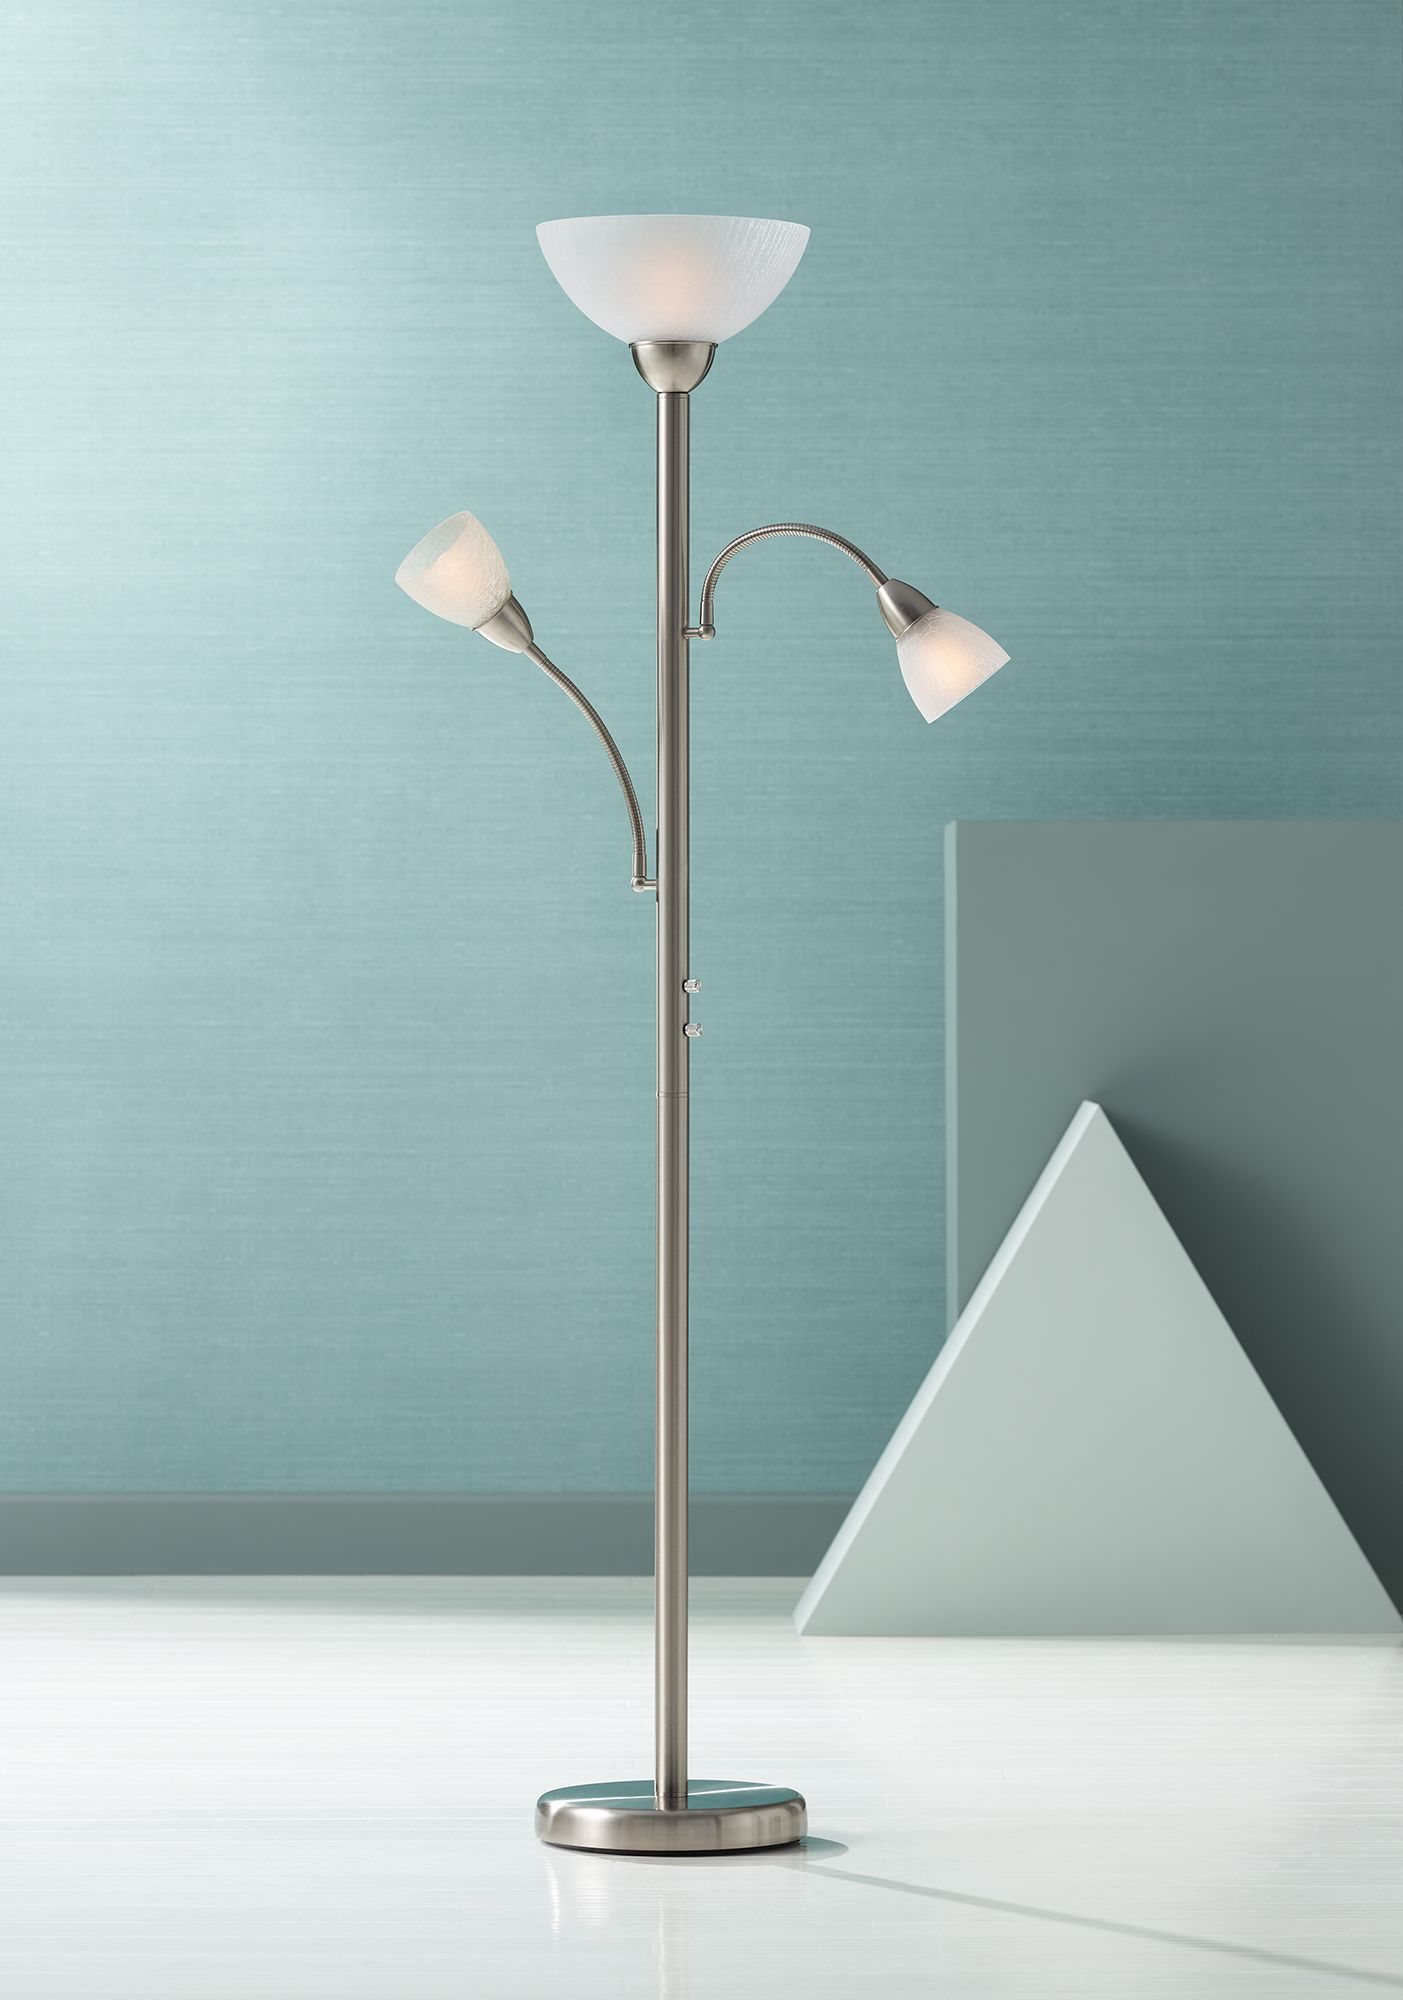 alexei brushed steel gooseneck torchiere floor lamp - Torchiere